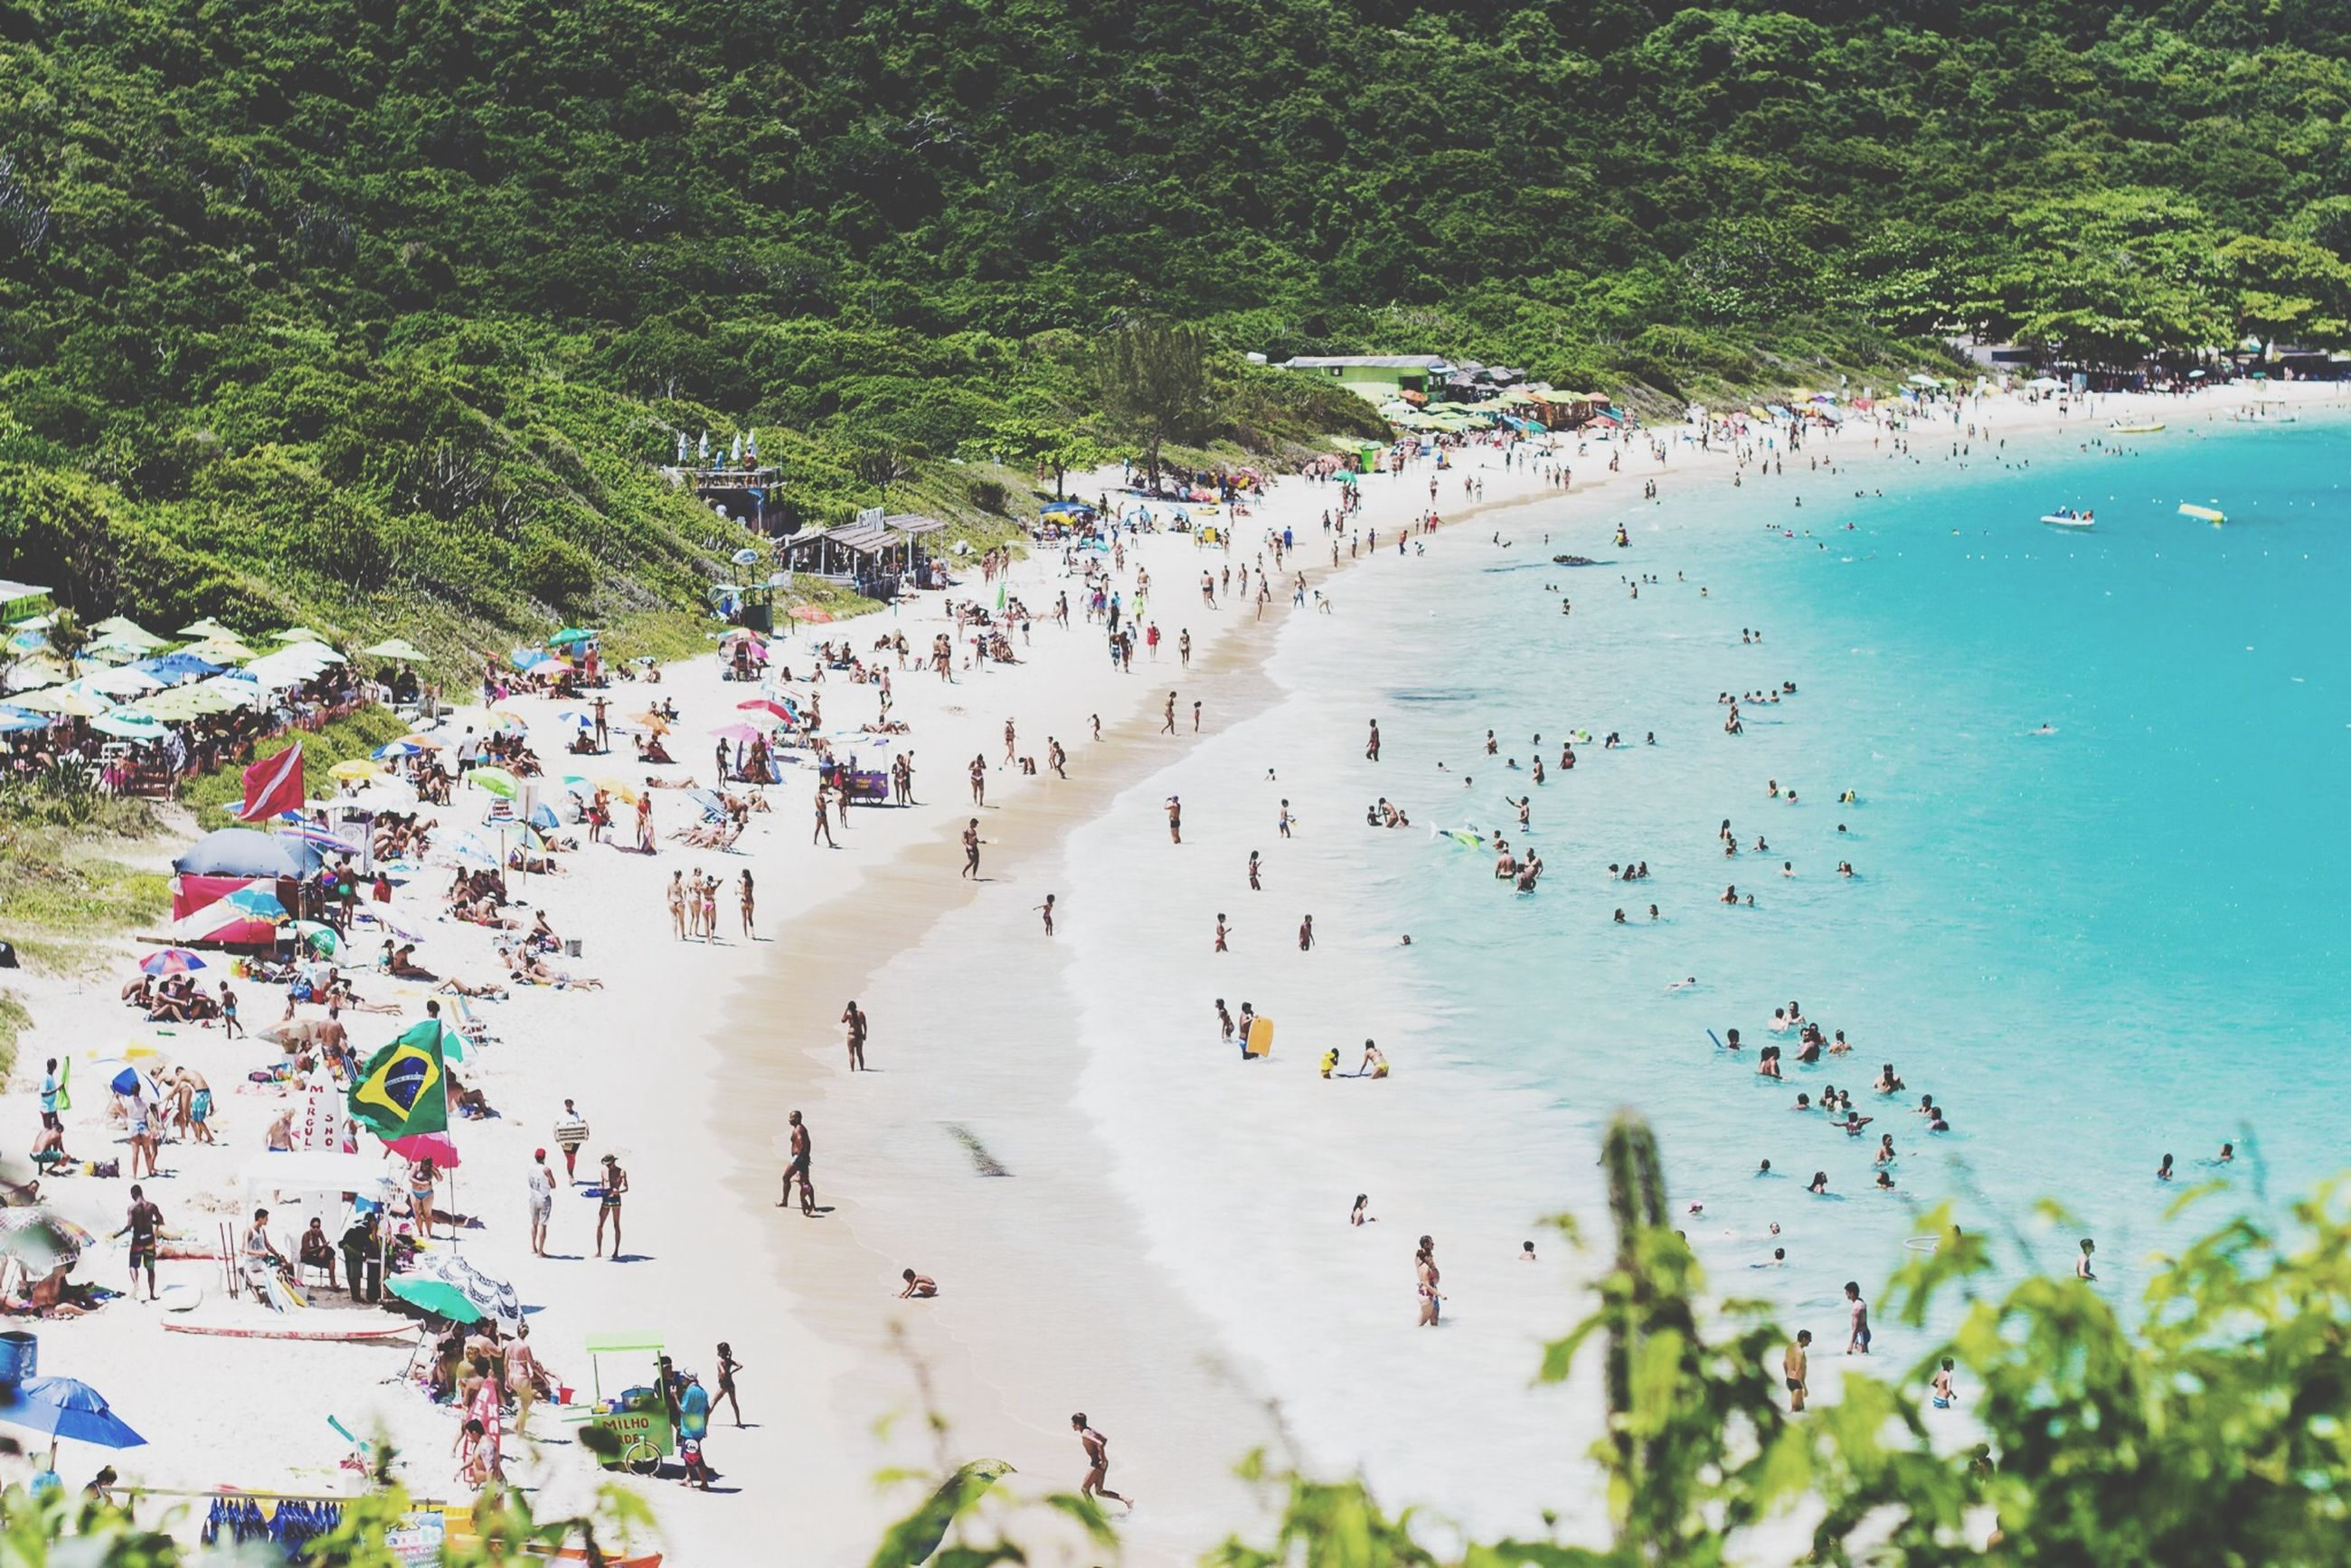 water, sea, beach, large group of people, high angle view, tree, shore, vacations, nature, leisure activity, lifestyles, beauty in nature, mixed age range, tranquility, day, scenics, horizon over water, sand, tourist